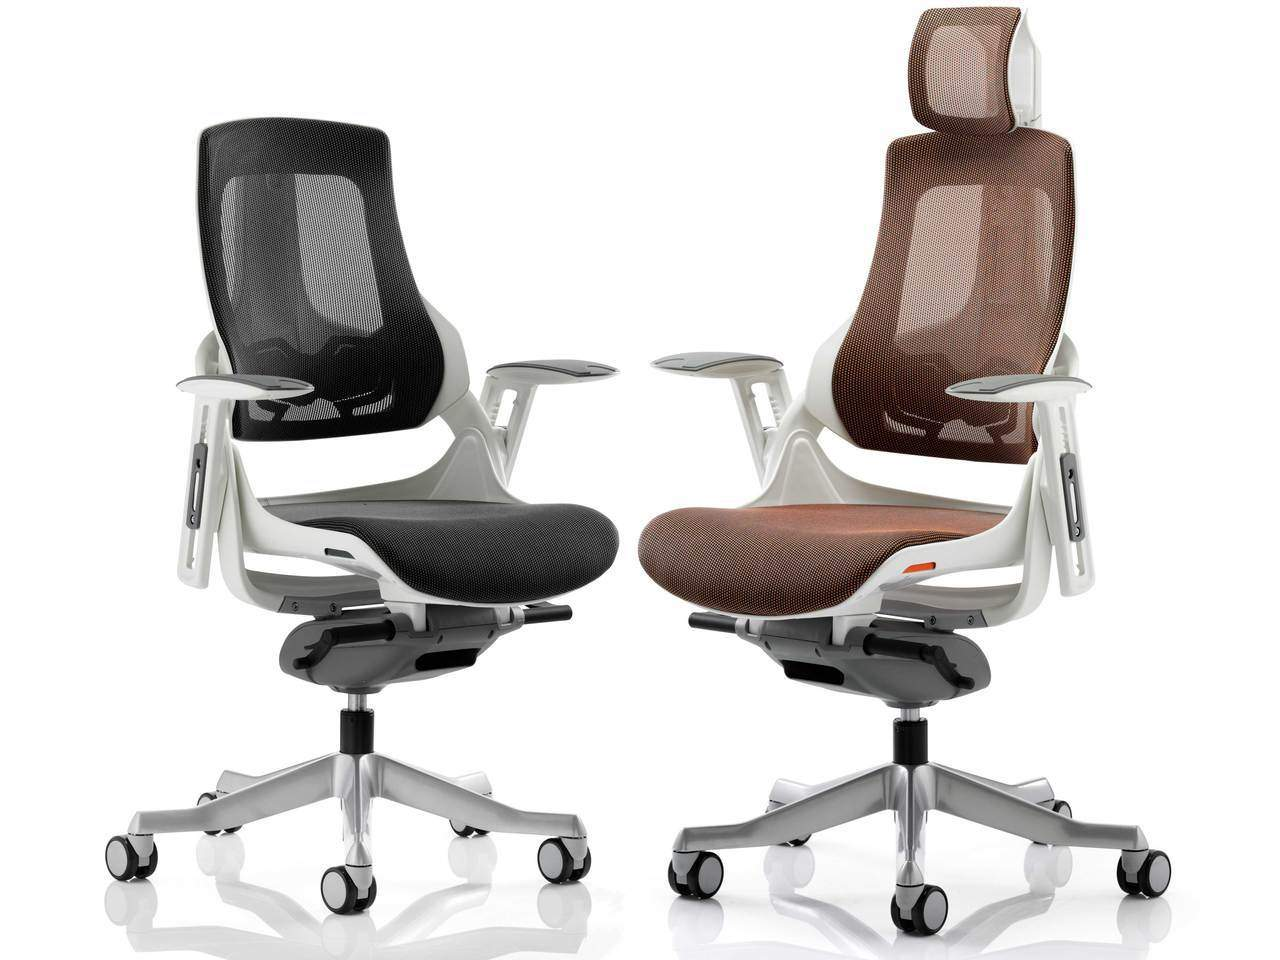 Zephyr Mesh Executive Office Chair in Mandarin or Black